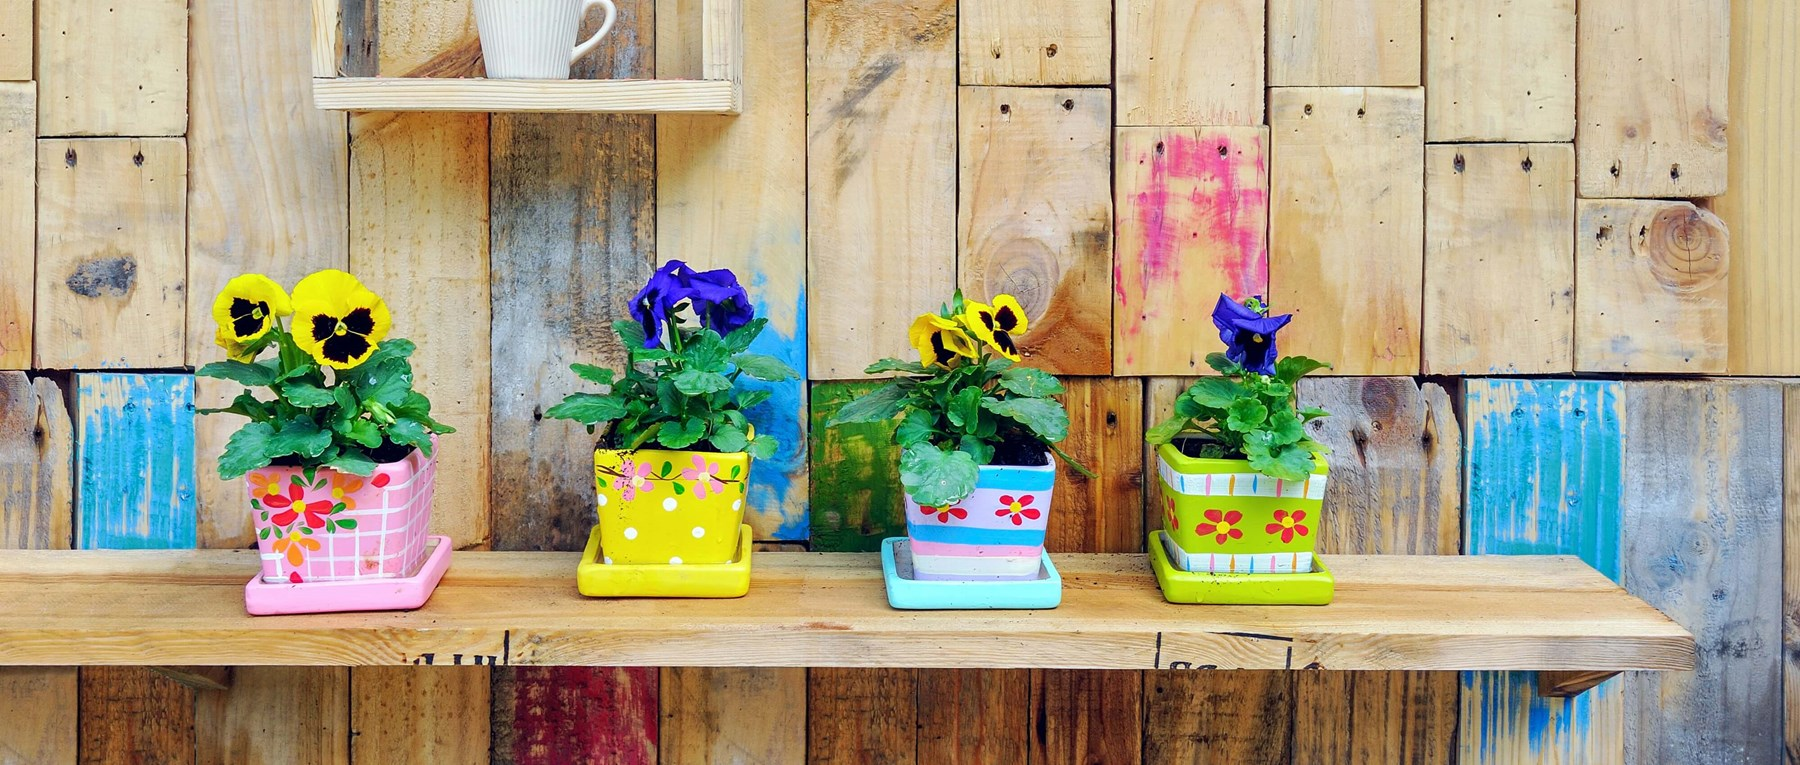 Painted pots with plants in